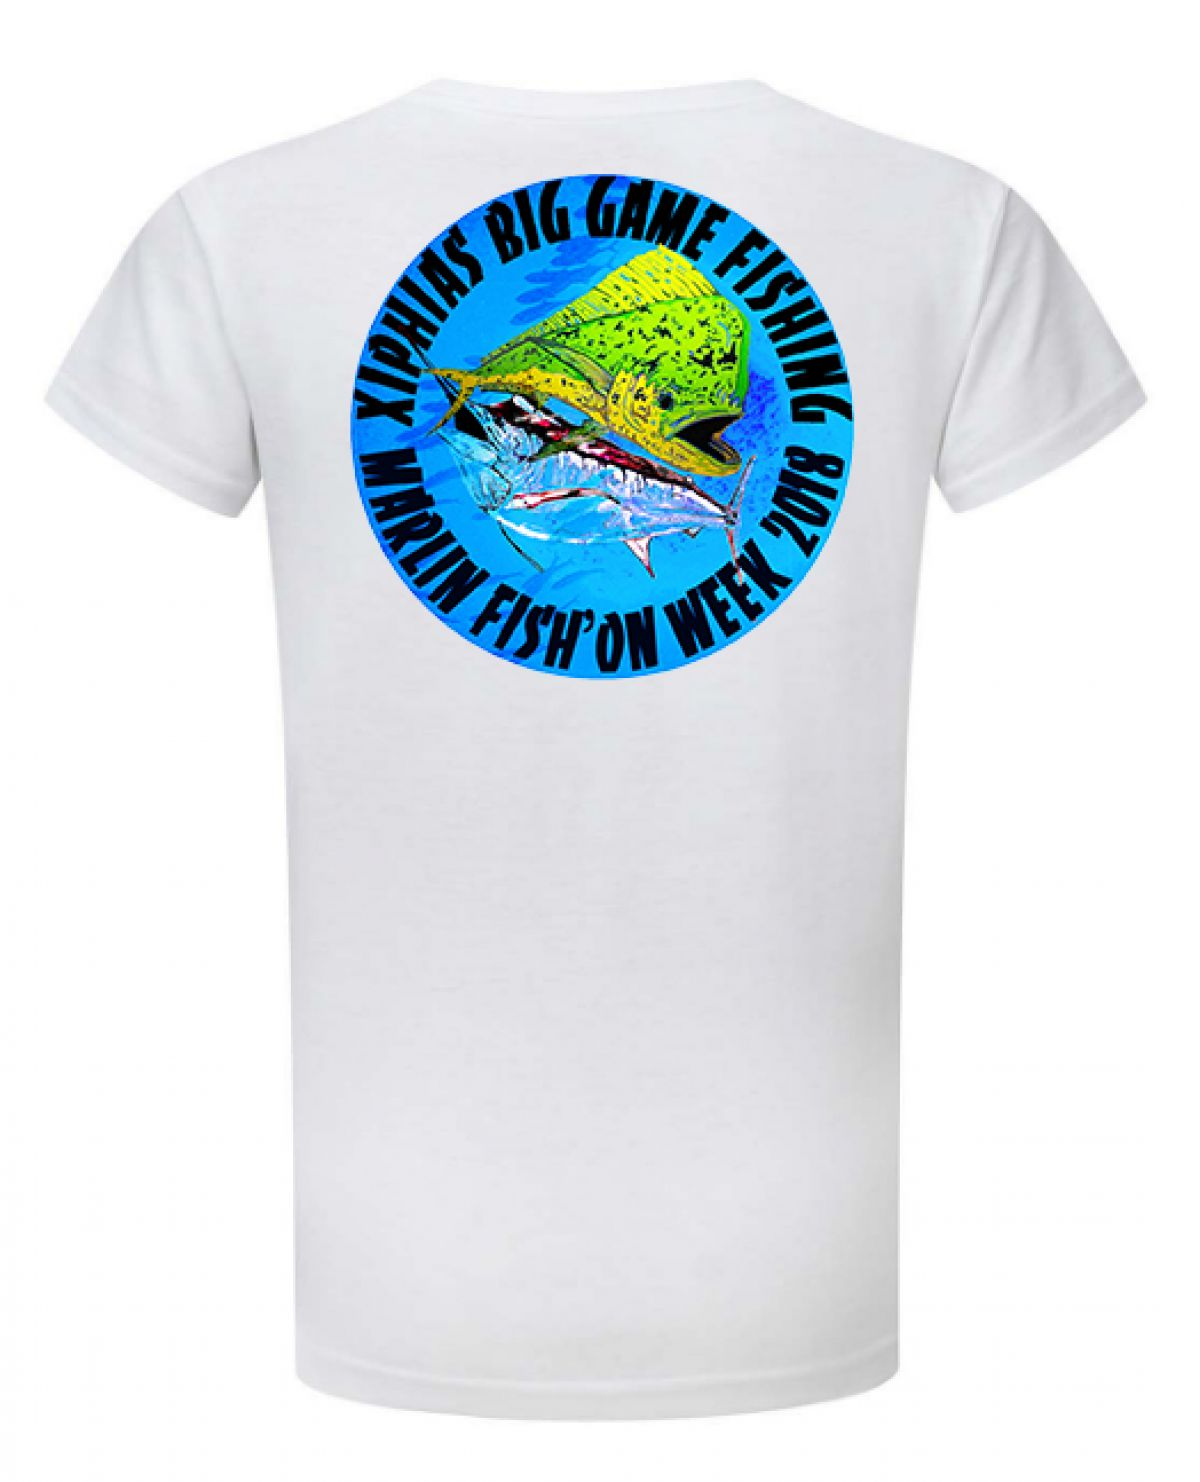 Tee-Shirt Xiphias Big Game Fishing Ref 3